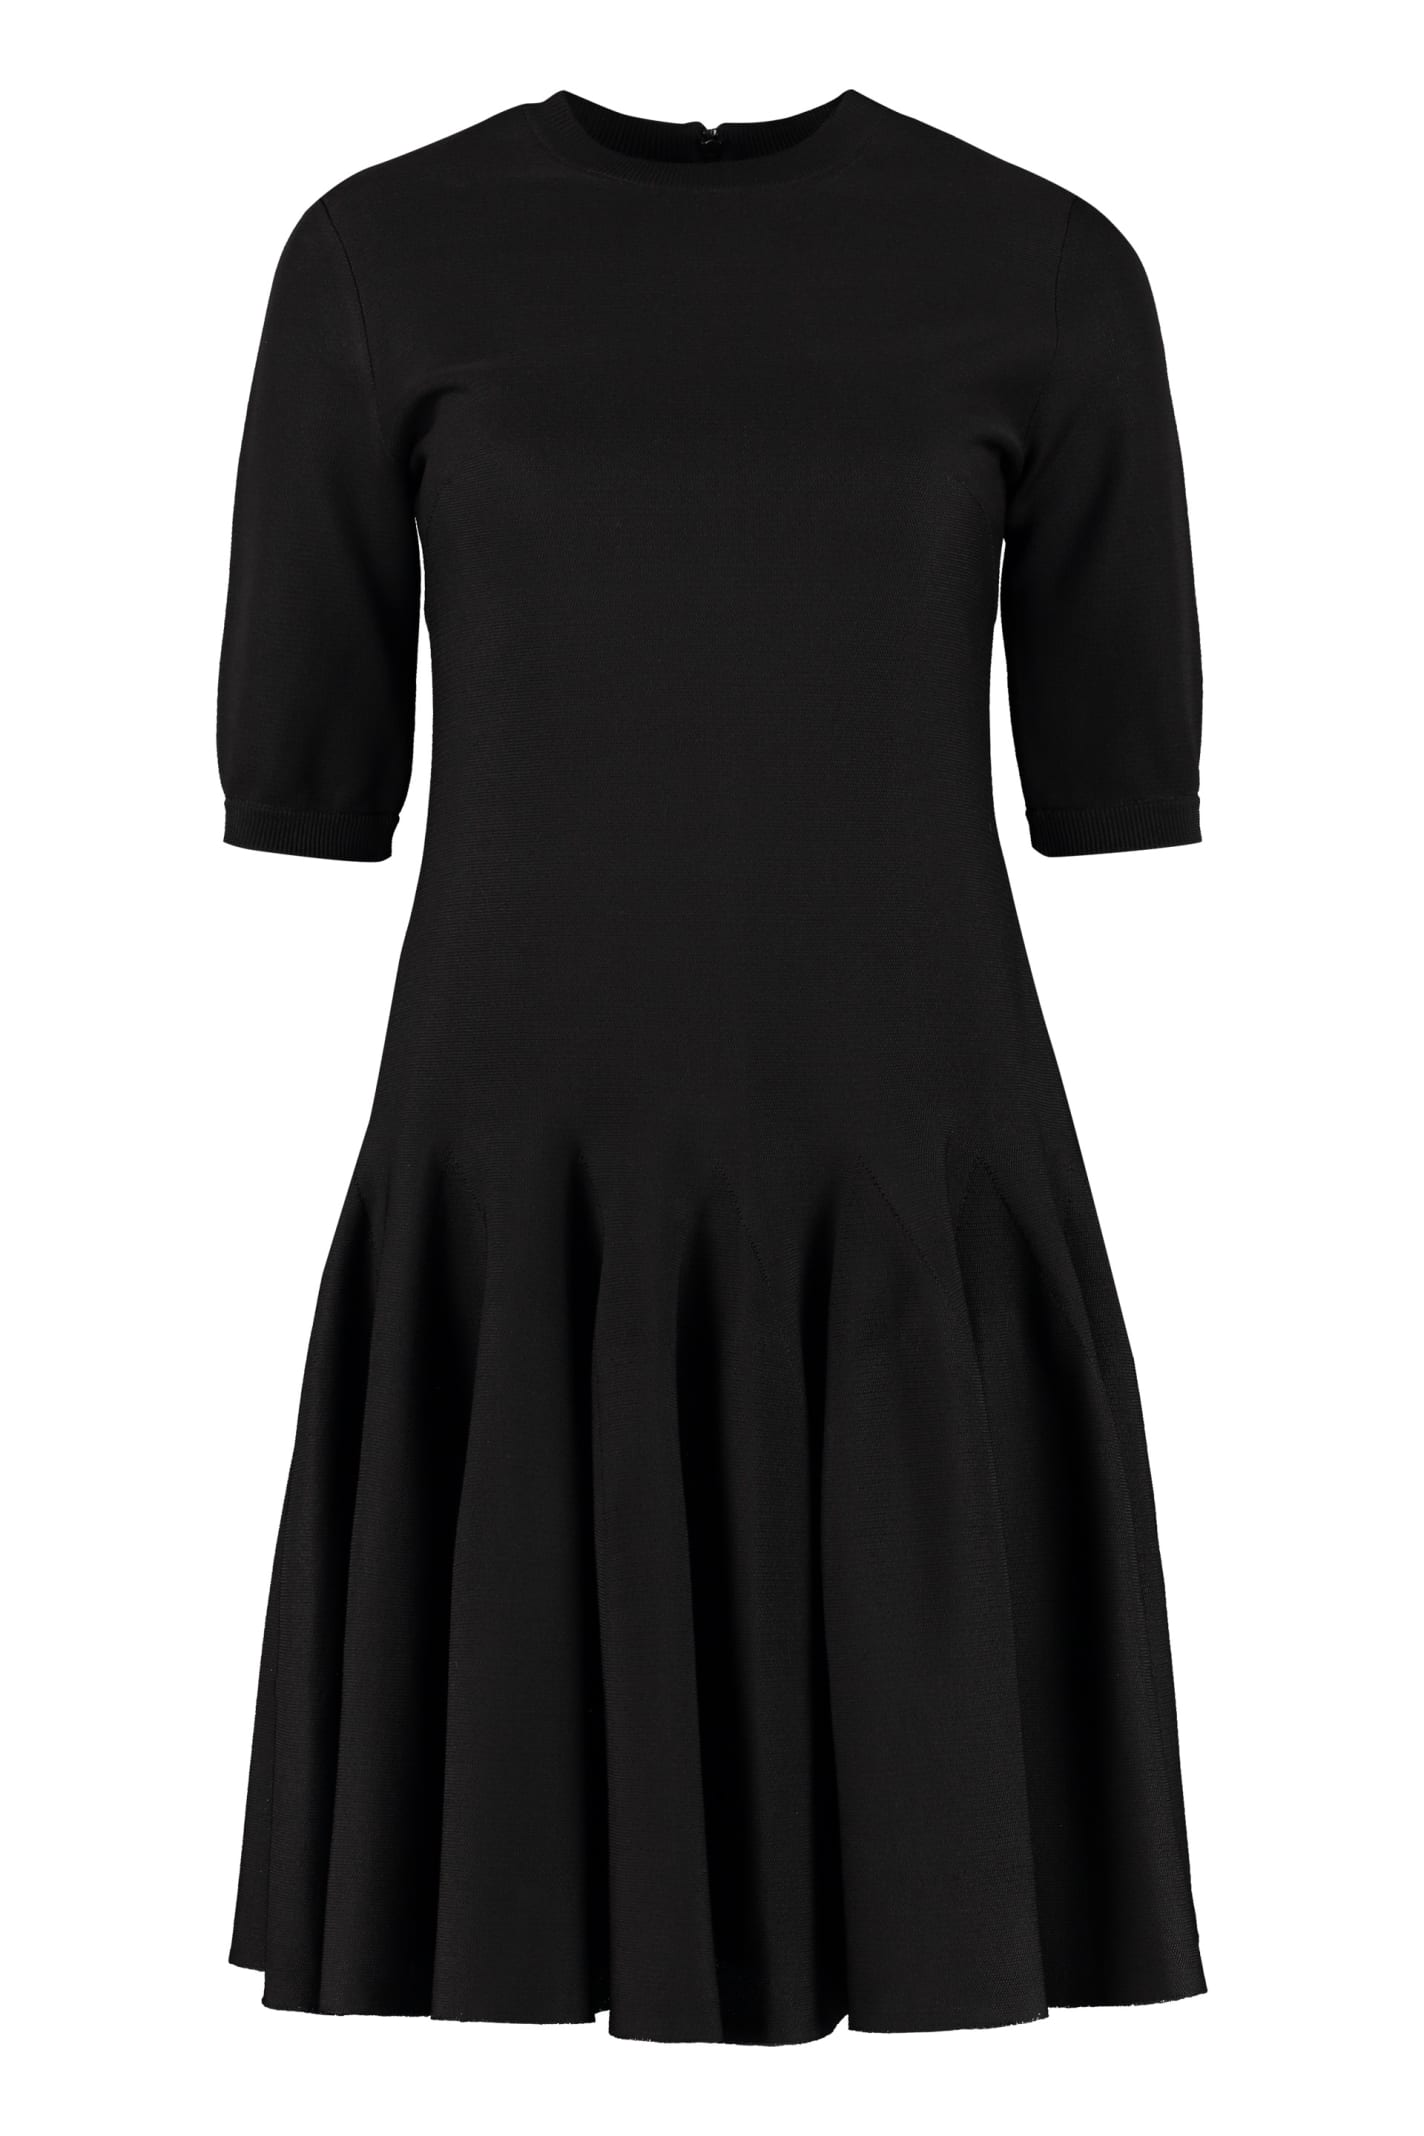 Givenchy Sweater Dress